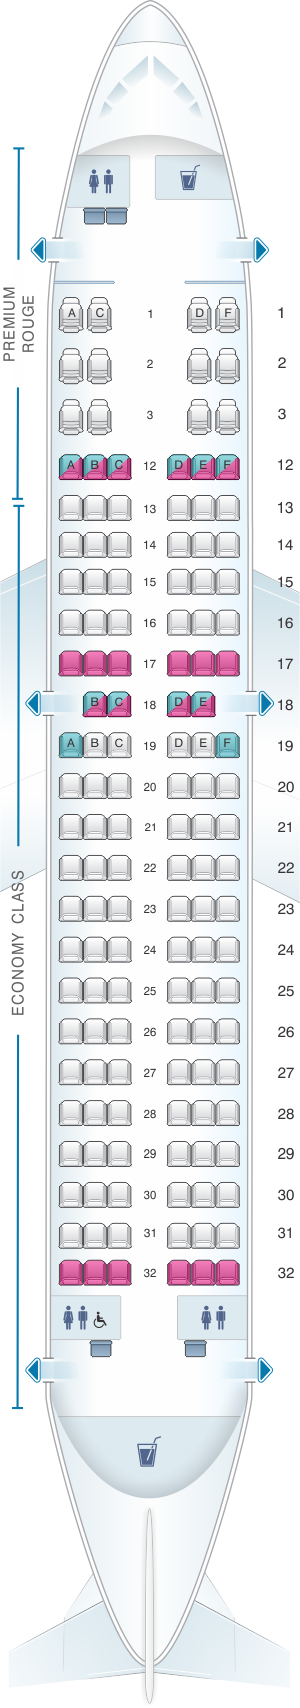 Seat map for Air Canada Airbus A319 100 Rouge